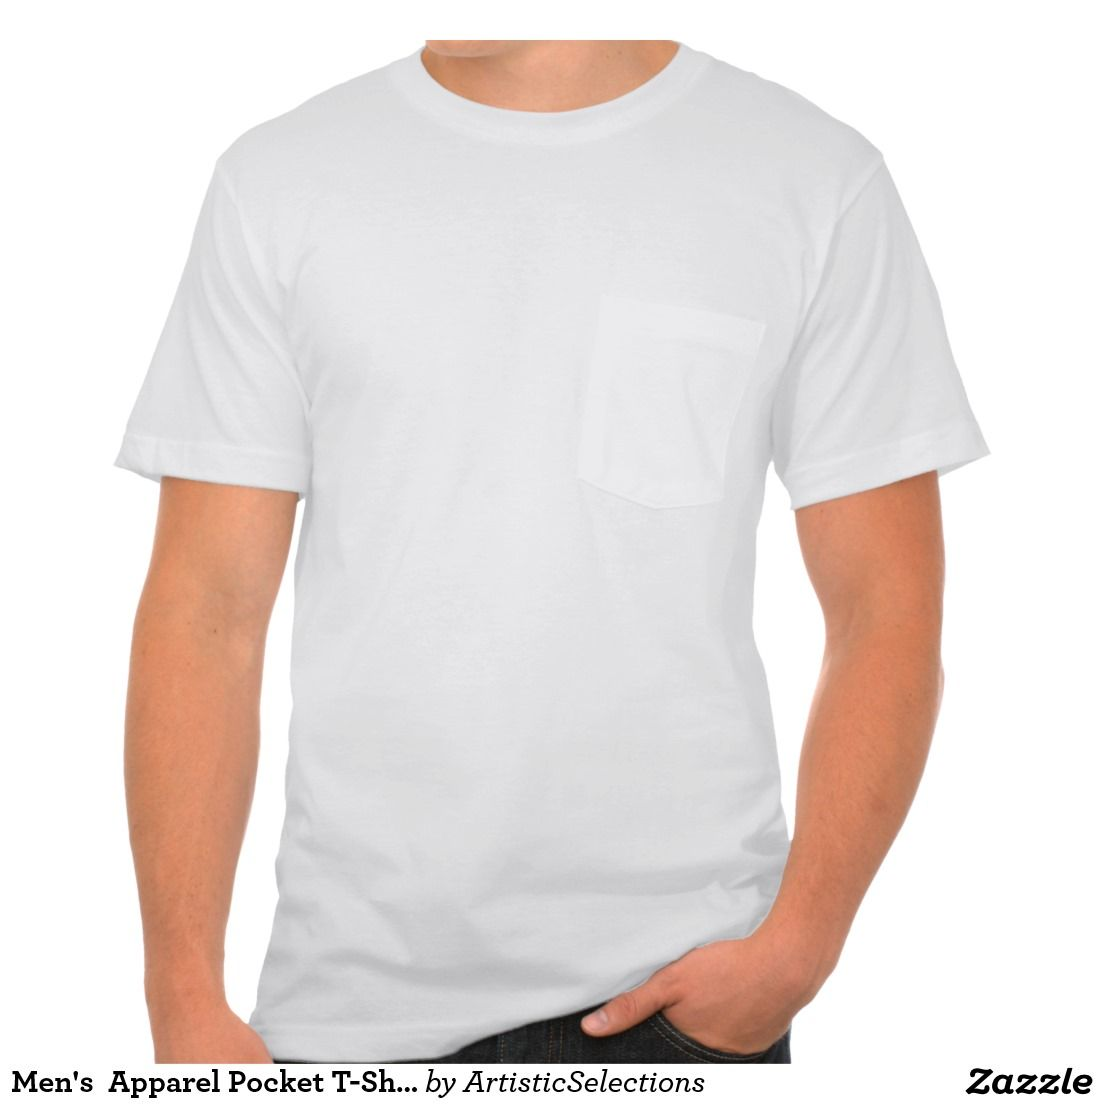 Pocket t shirt template photo realistic vector for Front pocket t shirt design